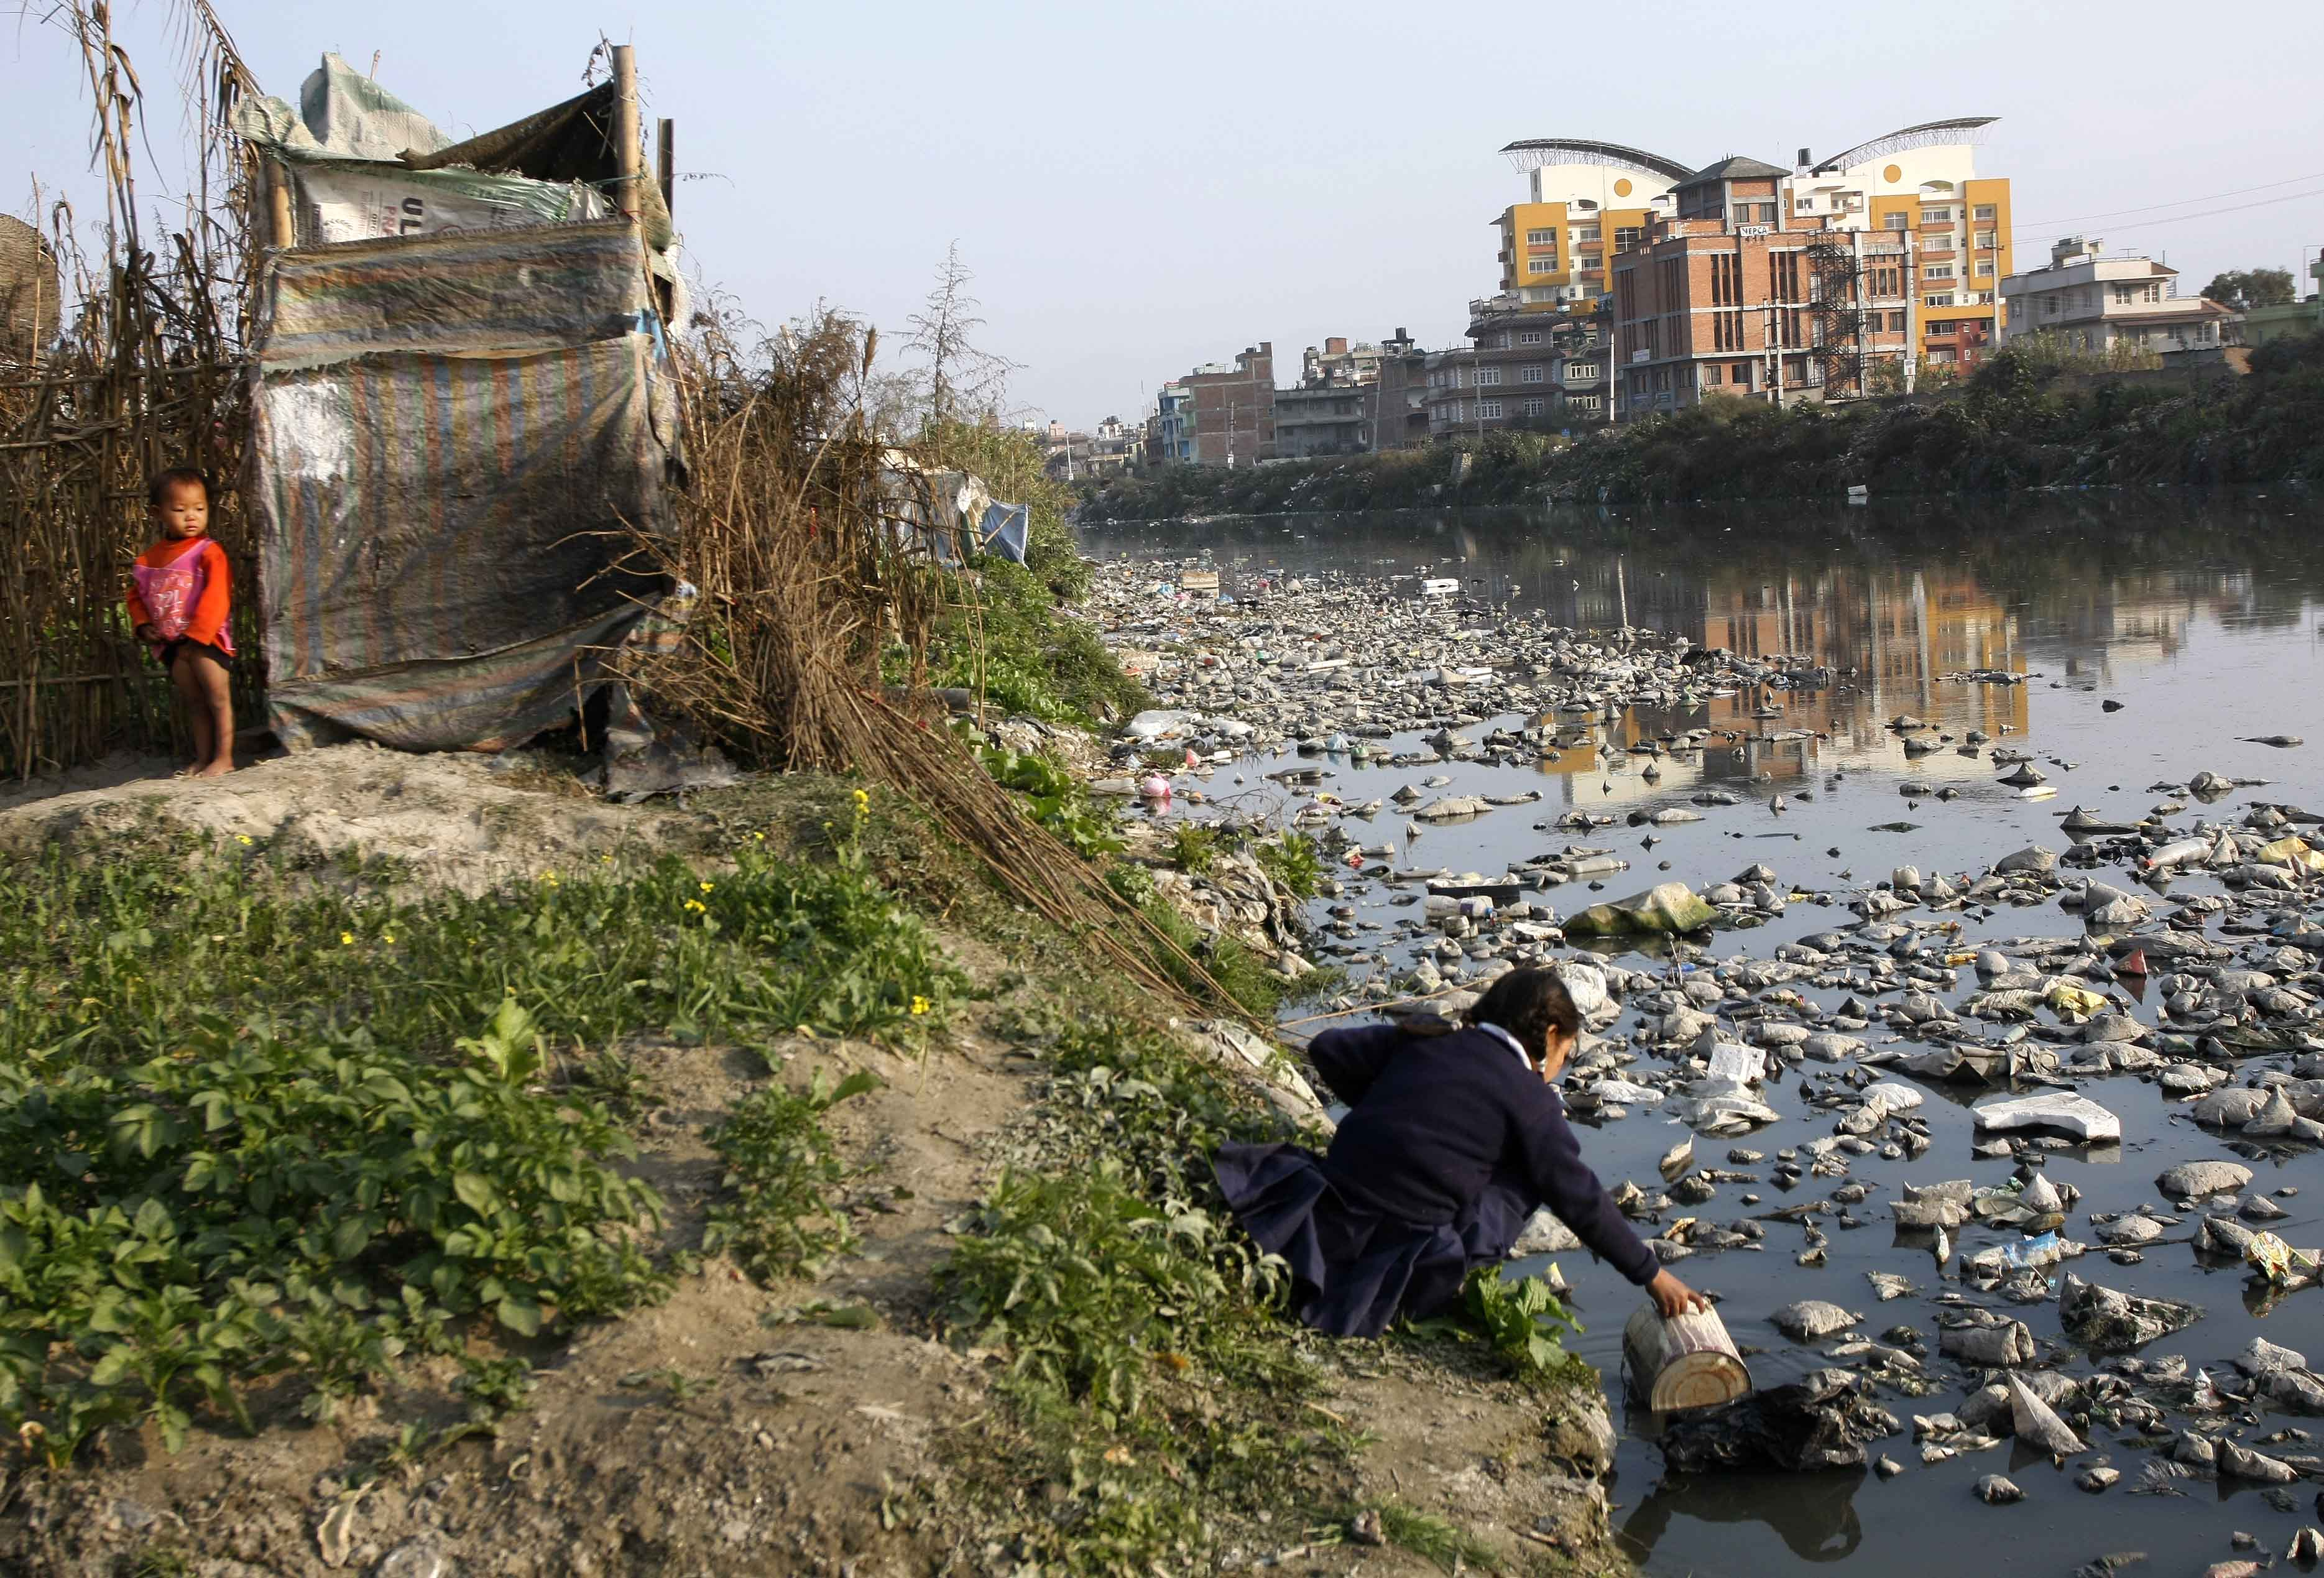 water pollution in essay essay on water pollution in for  photo essay lives of illegal squatters on the banks of river copyright story south asia laxmi essay on water pollution